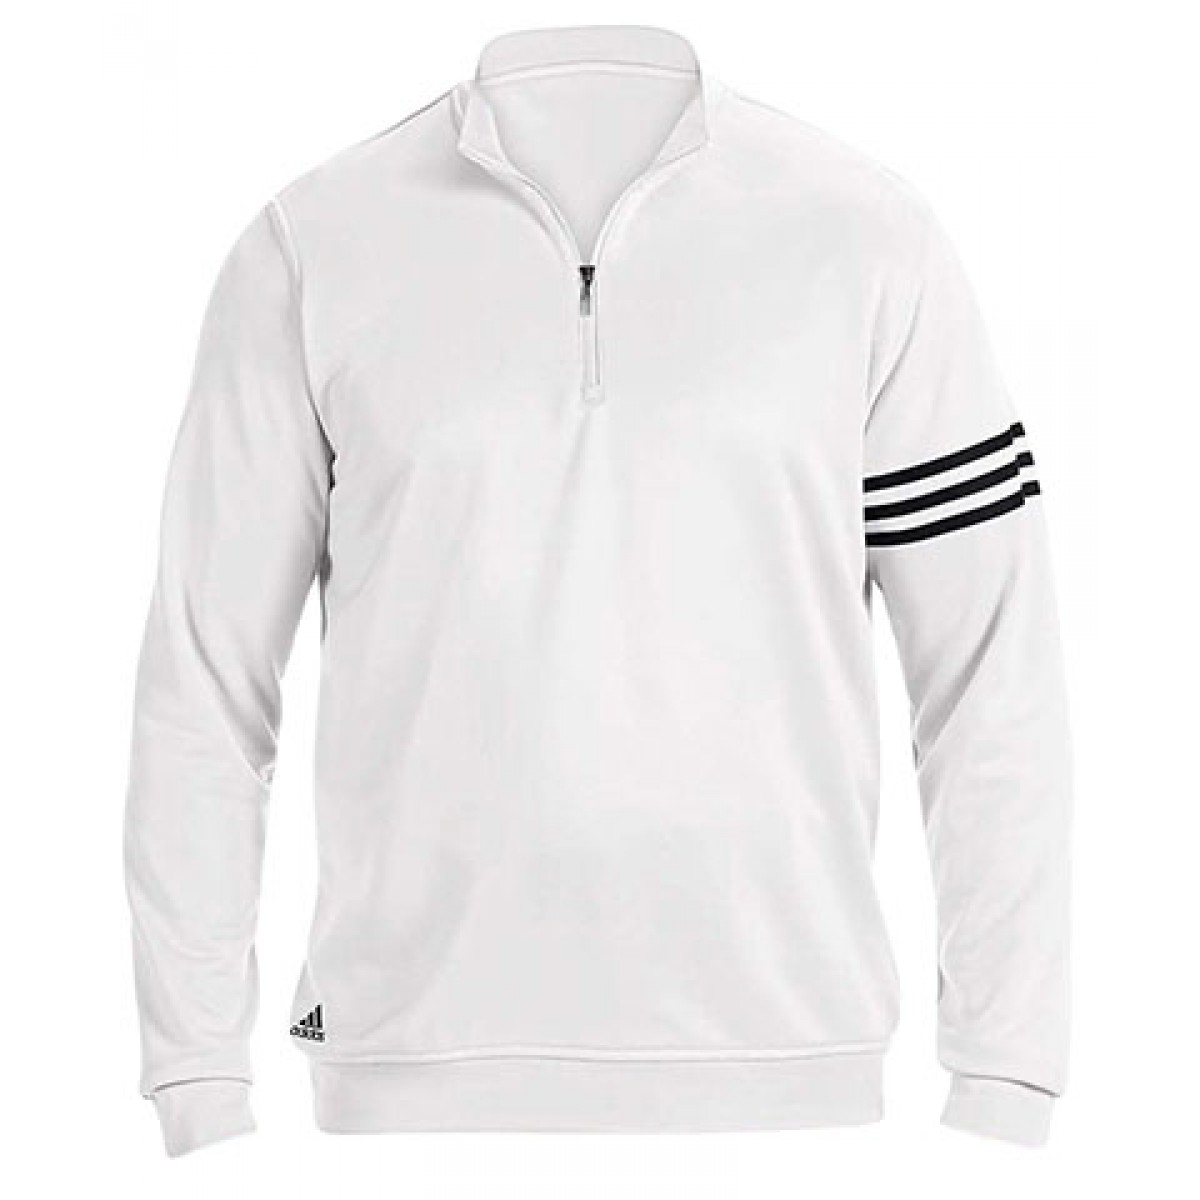 Adidas Men's 3-Stripes Pullover-White-M